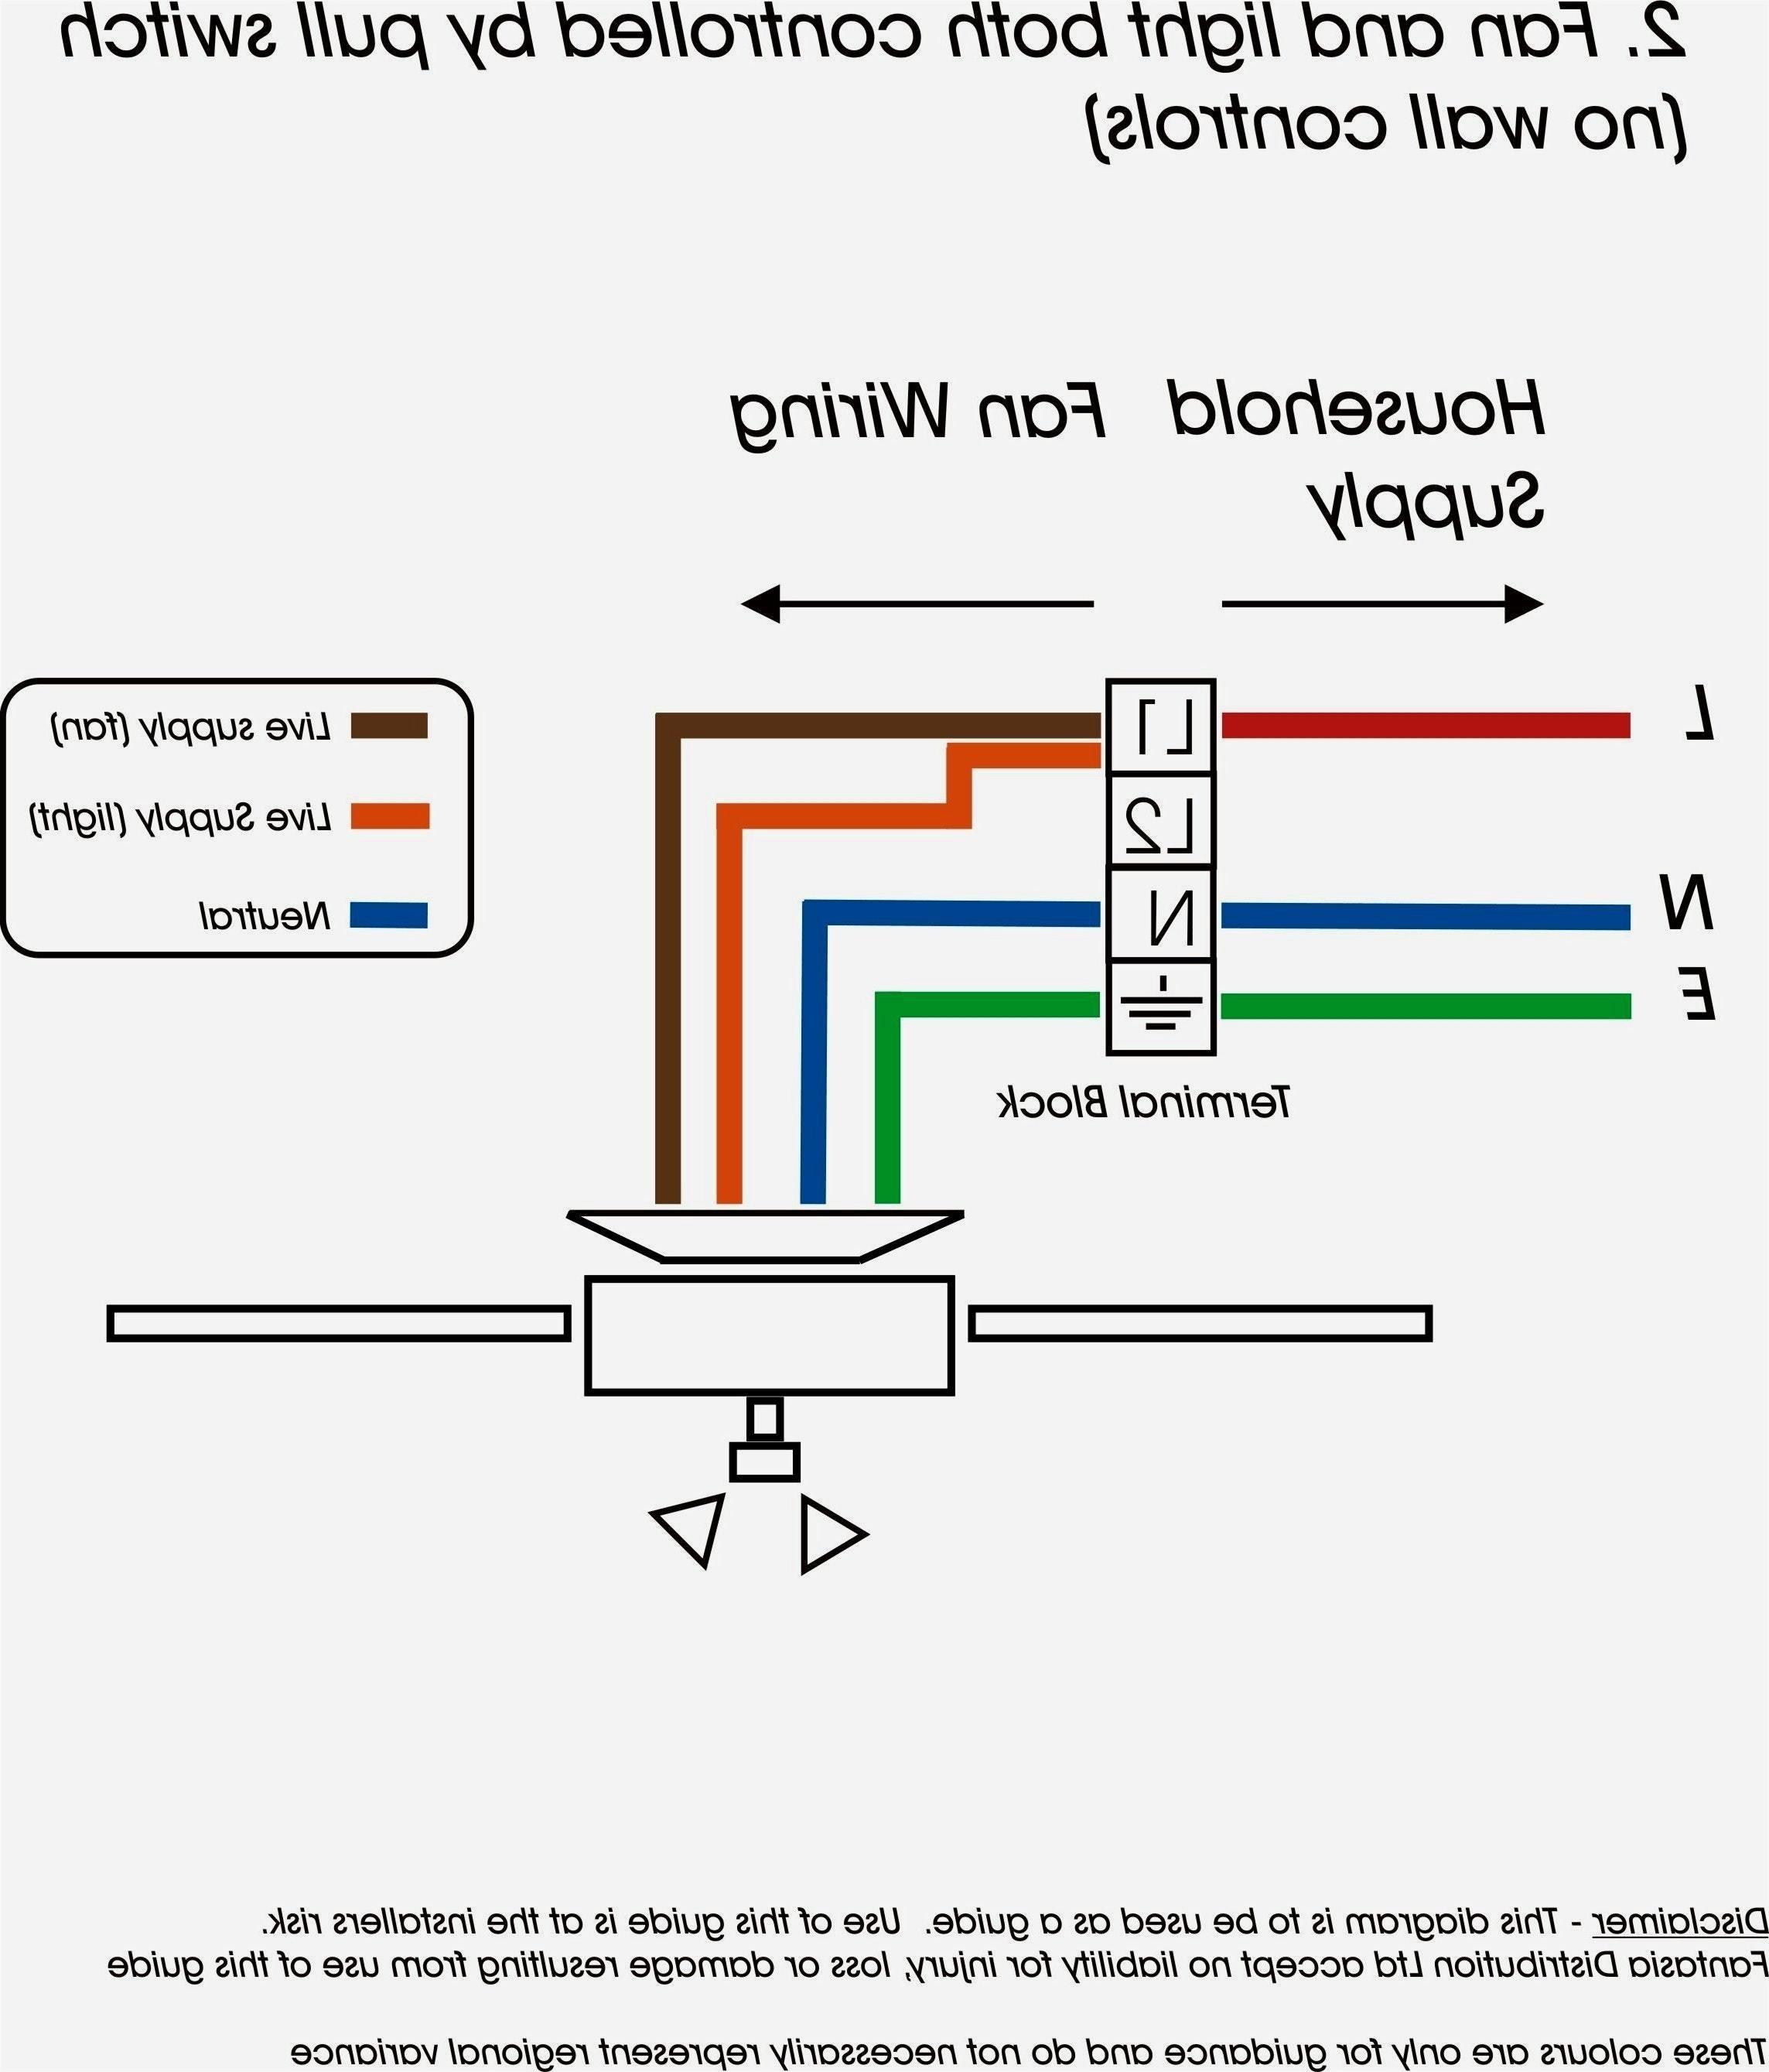 Car Alternator Connection Diagram Best Wiring Diagrams for Ceiling Fan • Electrical Outlet Symbol 2018 Of Car Alternator Connection Diagram